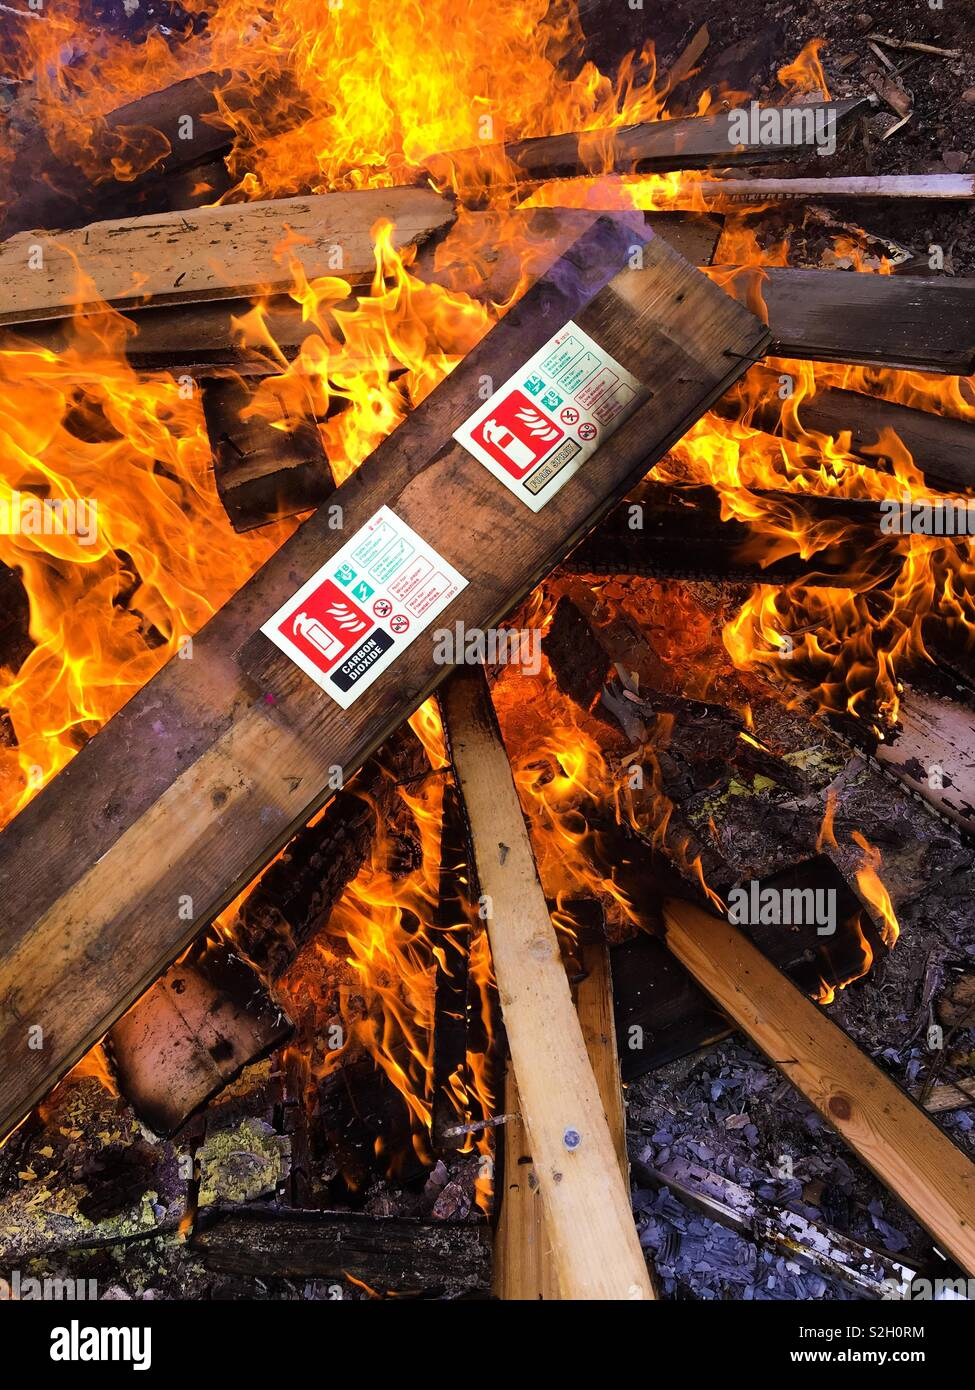 Fire safety signs on fire - Stock Image